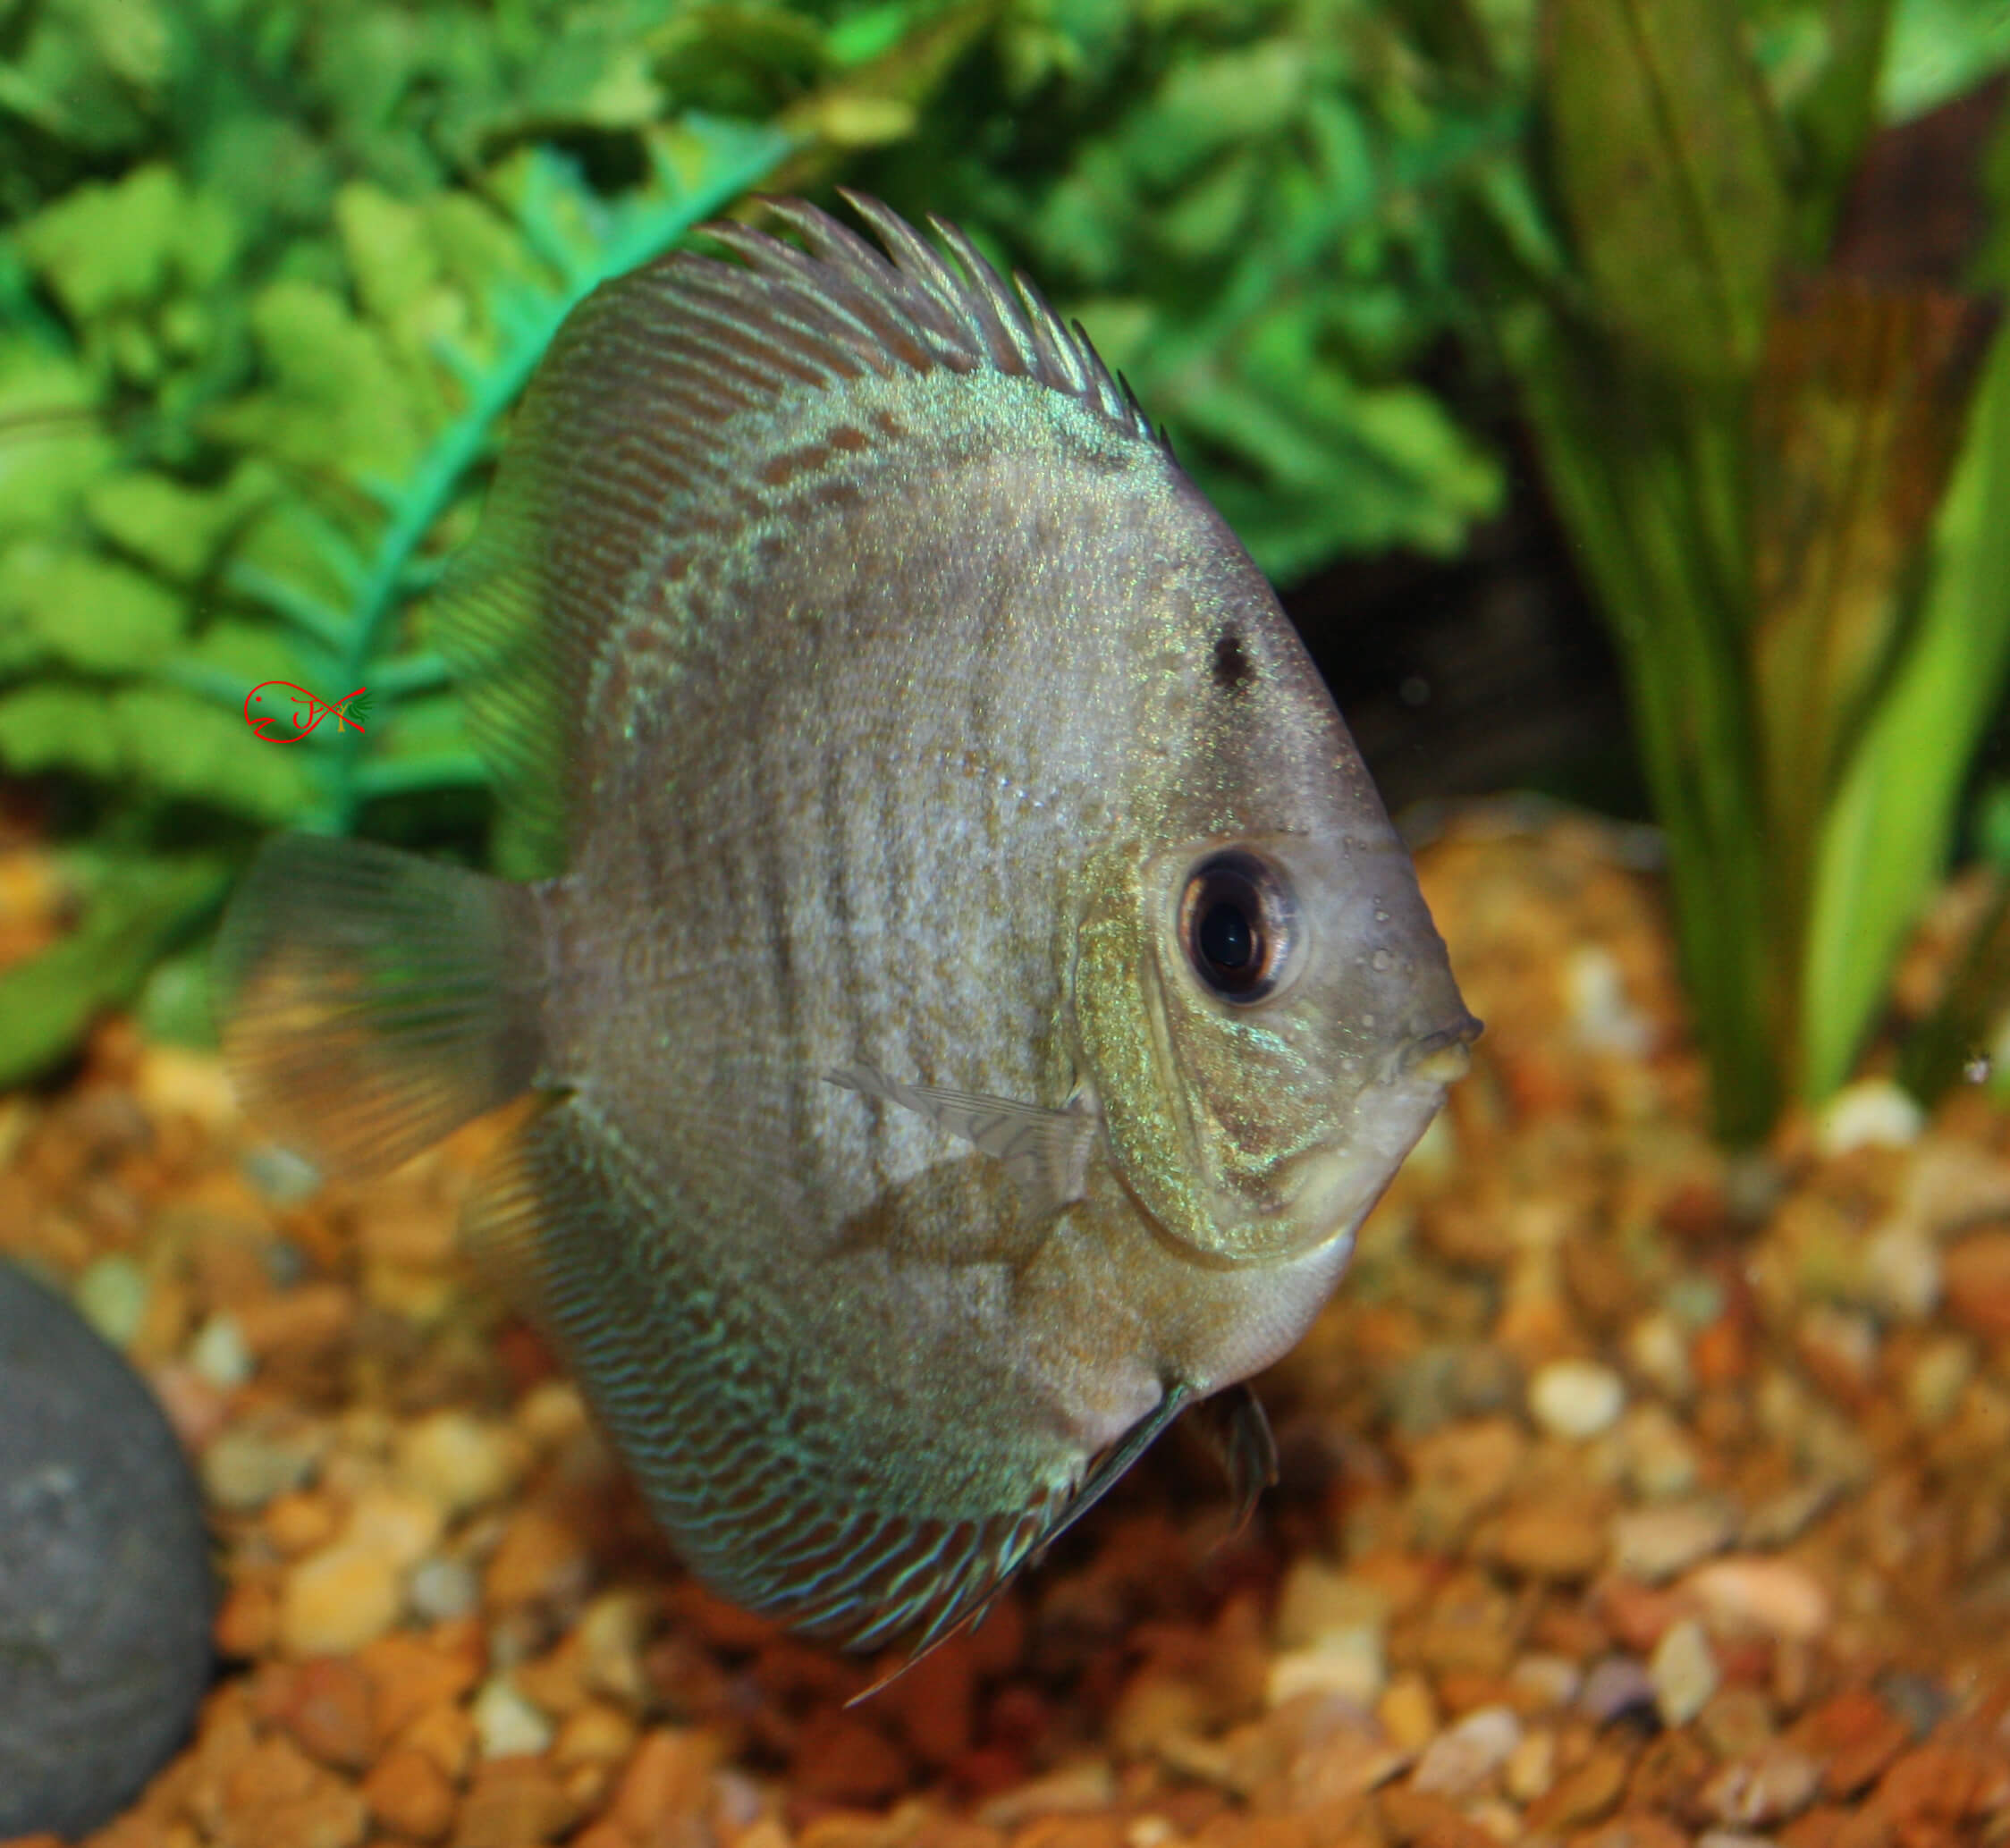 Discus Fish For Sale Nj Discus For Sale Absolutely Fish Nj Red Melon Discus 2017 Fish Tank